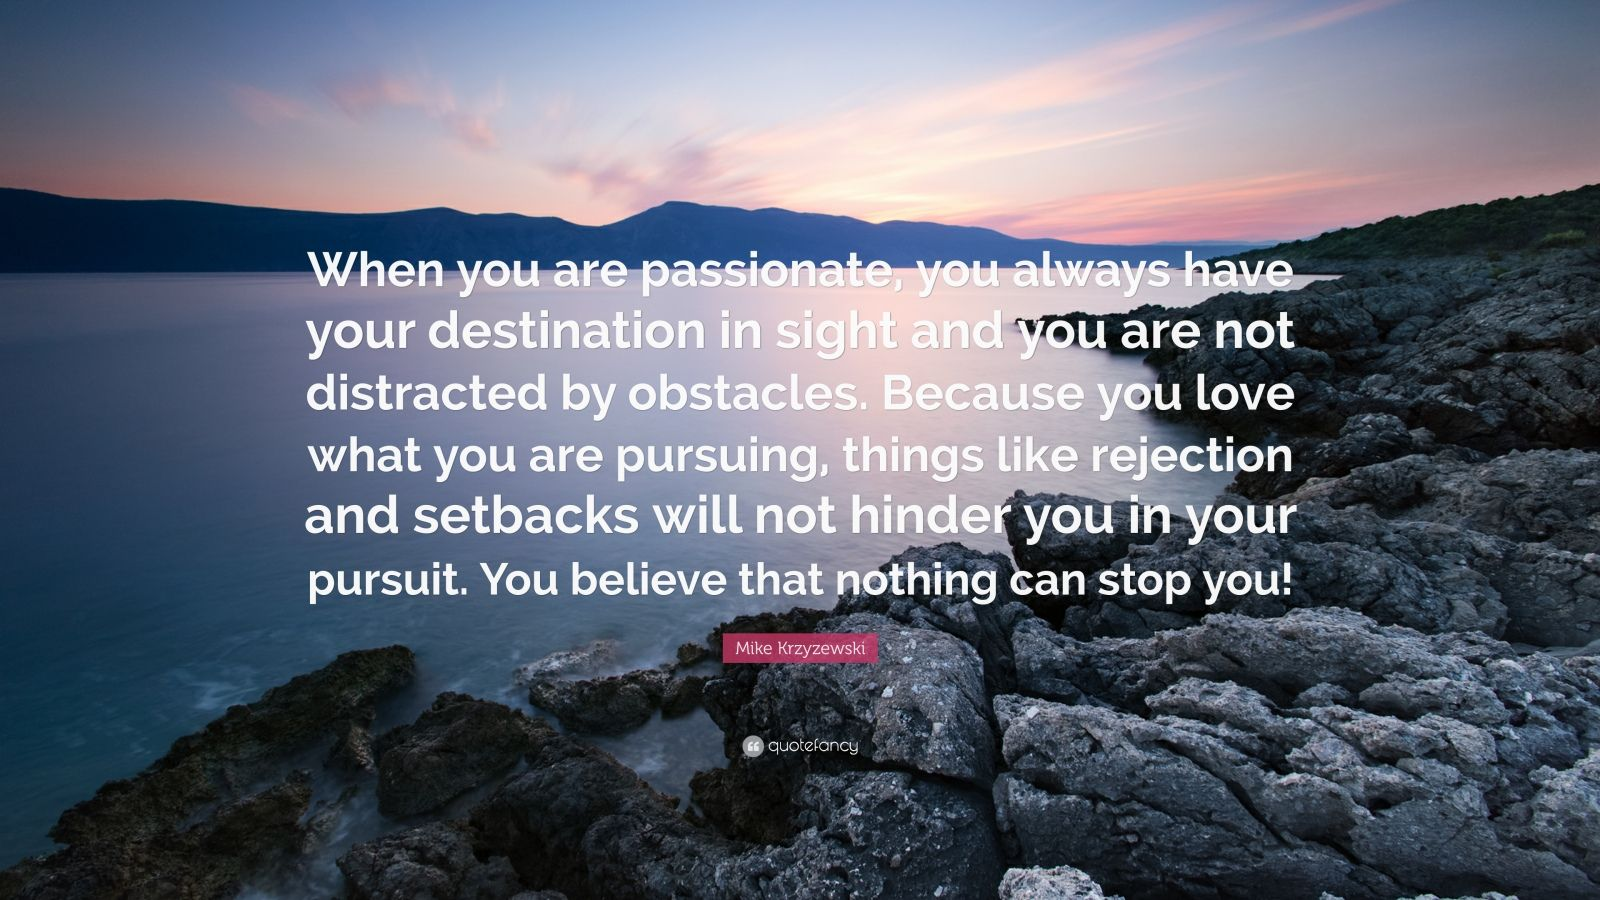 """Mike Krzyzewski Quote: """"When you are passionate, you always have your destination in sight and you are not distracted by obstacles. Because you love what you are pursuing, things like rejection and setbacks will not hinder you in your pursuit. You believe that nothing can stop you!"""""""